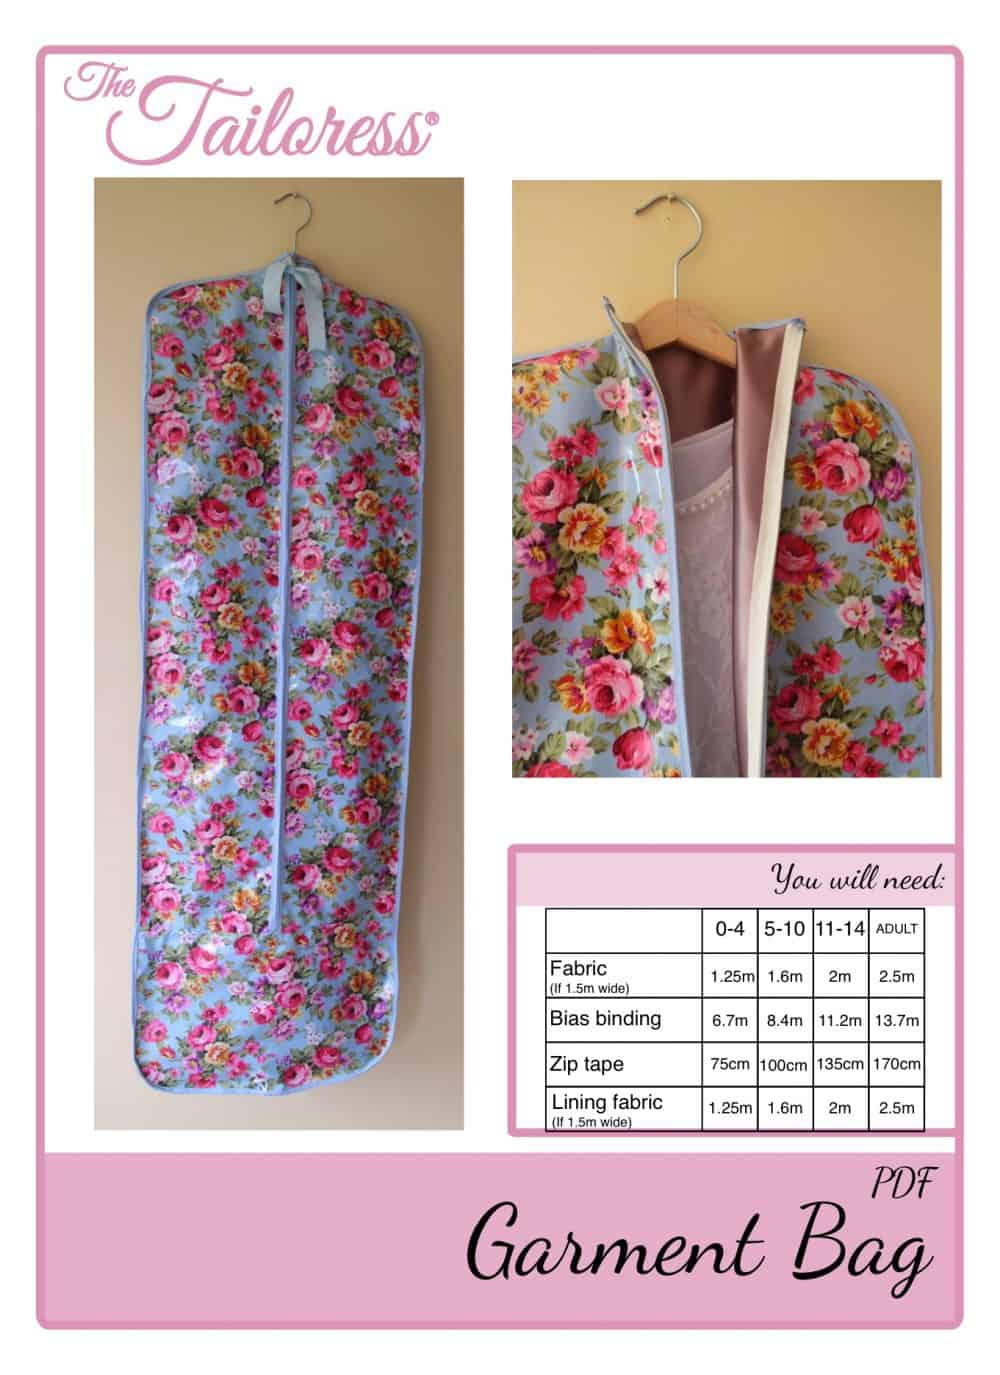 The Tailoress PDF Sewing Patterns - Garment Bag Tutorial